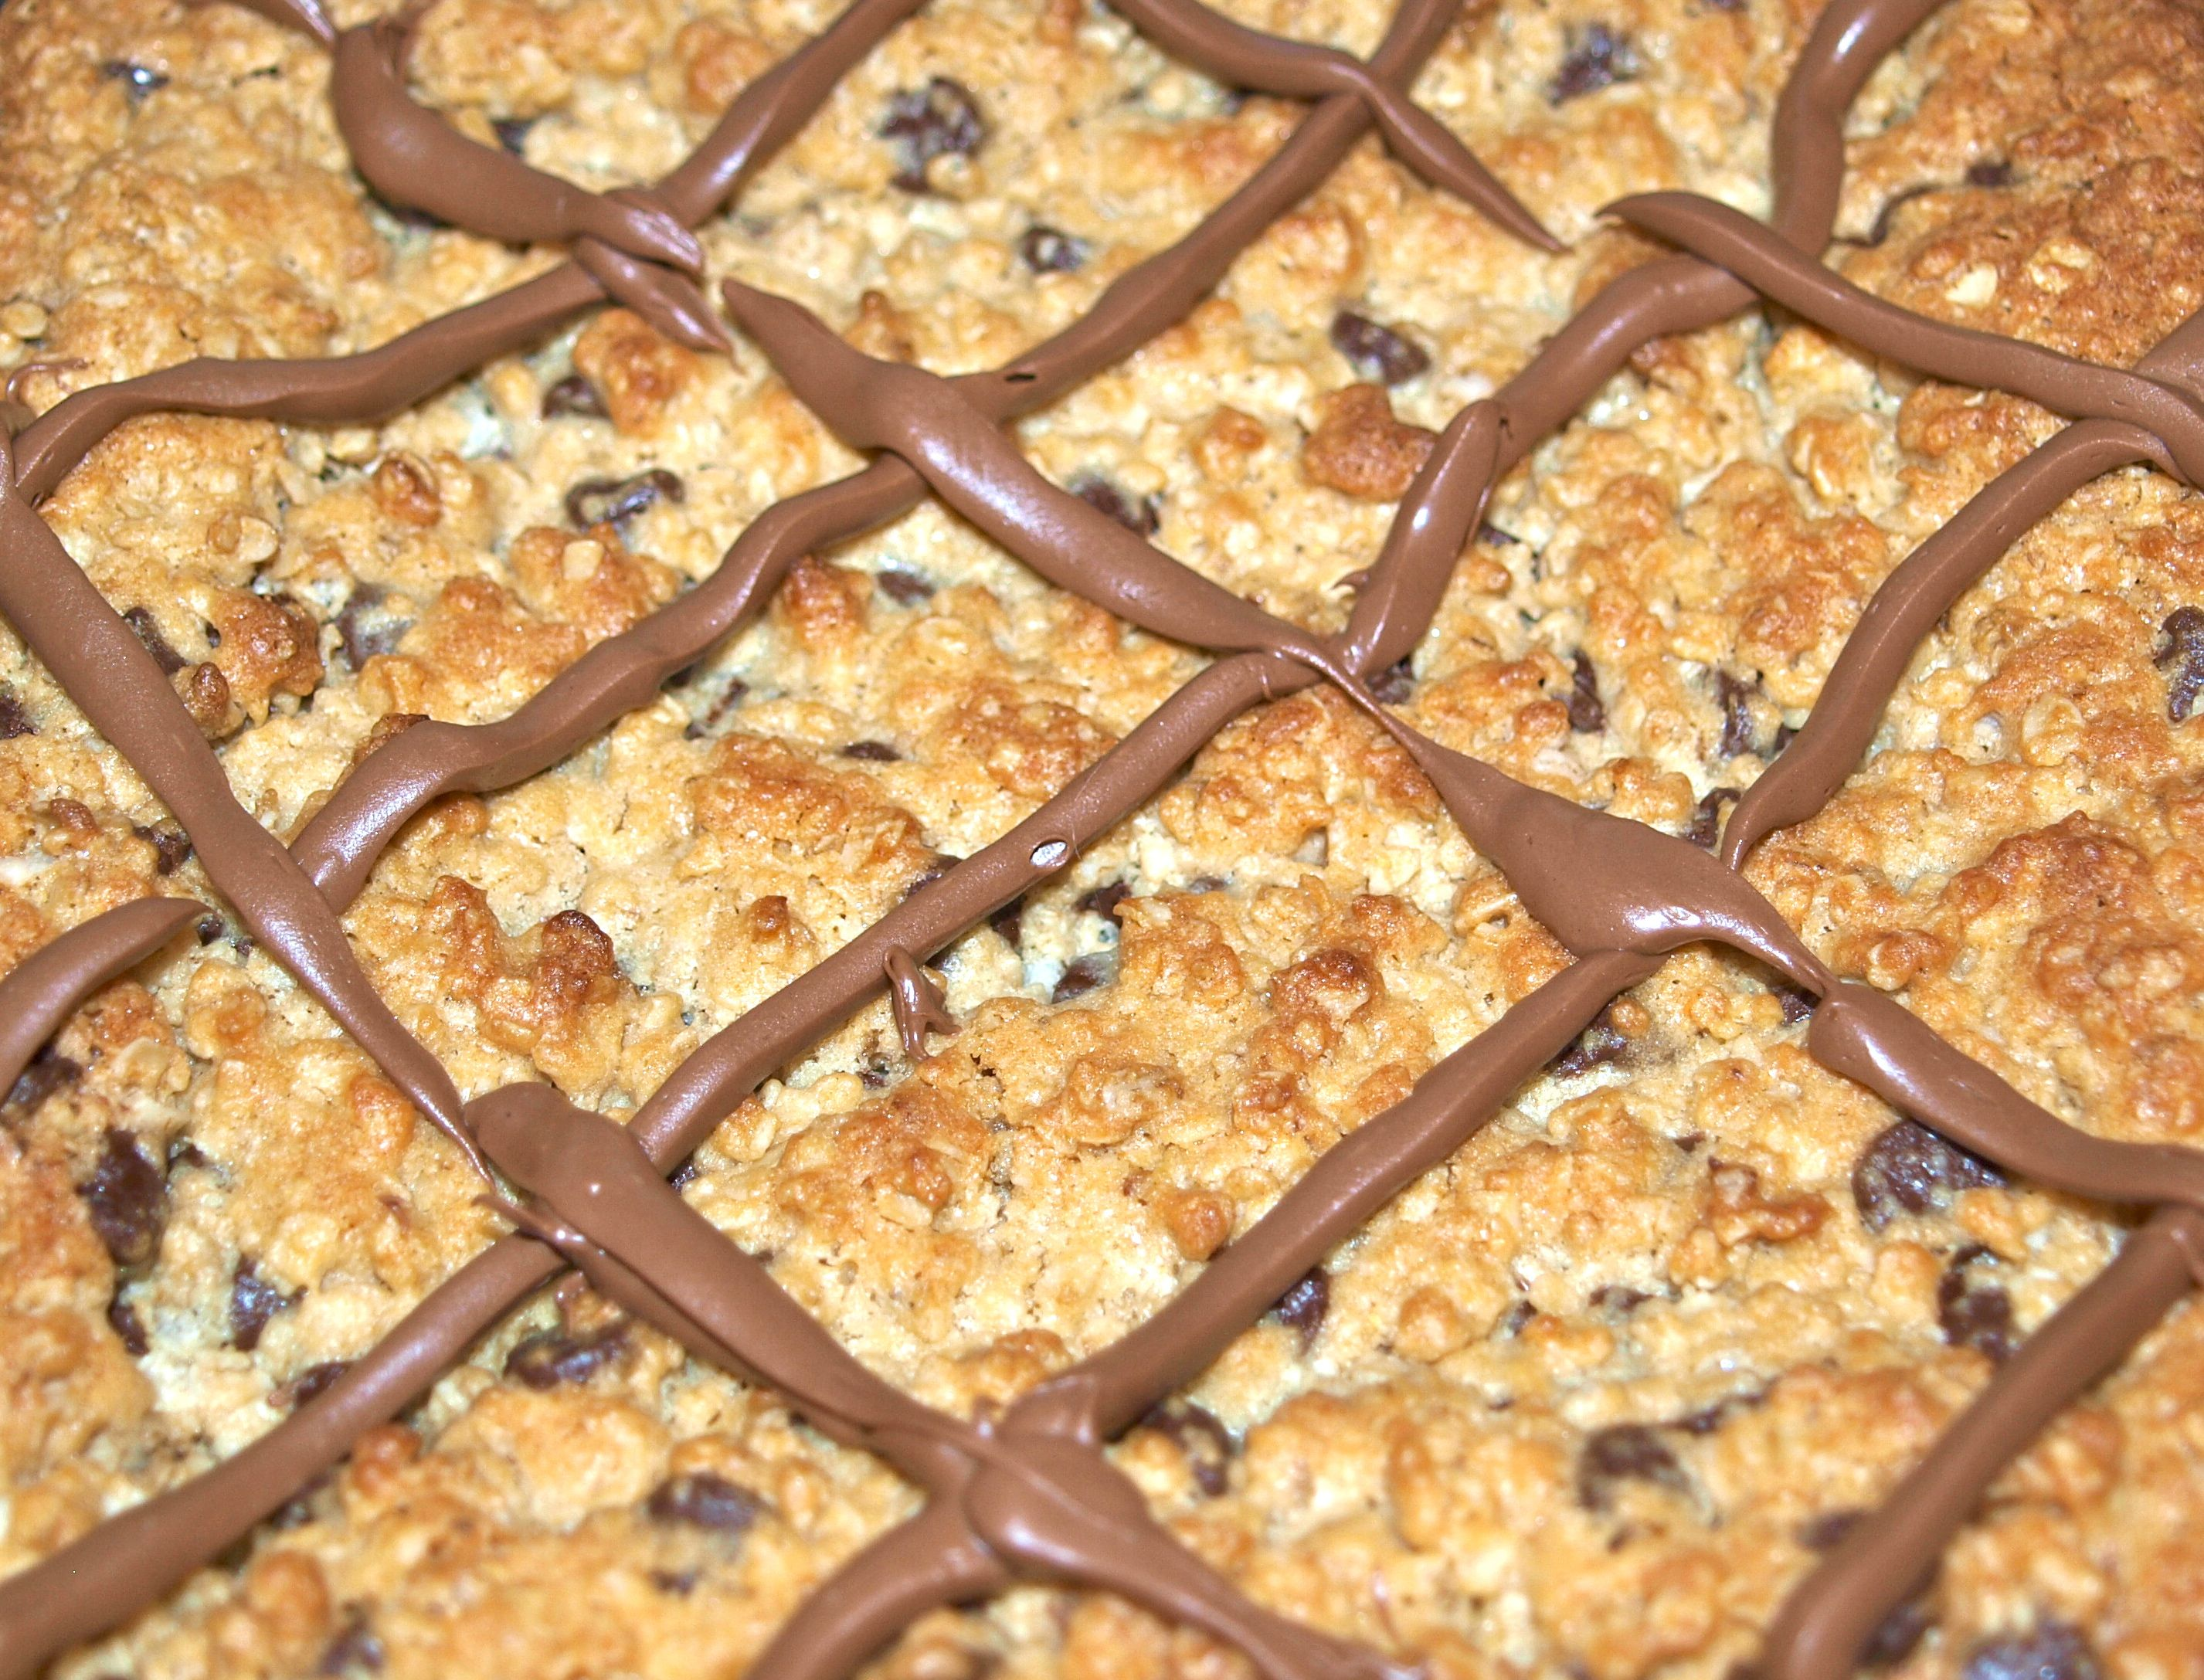 Chocolate Chip Oatmeal Bars - Life In Pleasantville